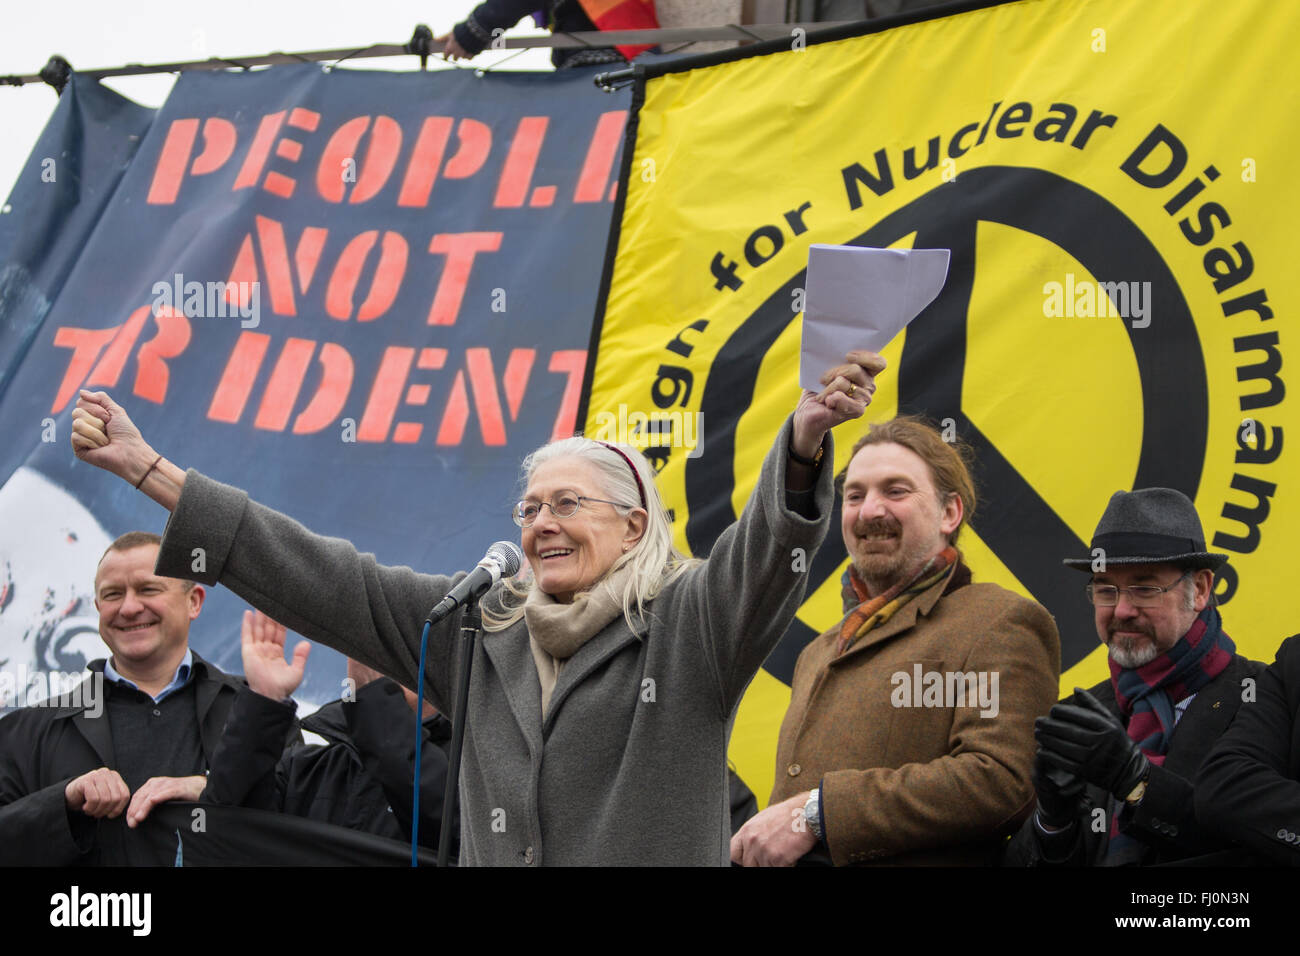 London, England. 27 Feb 2016. Vanessa Redgrave, actress and campaigner addresses the rally in Trafalgar Square after - Stock Image